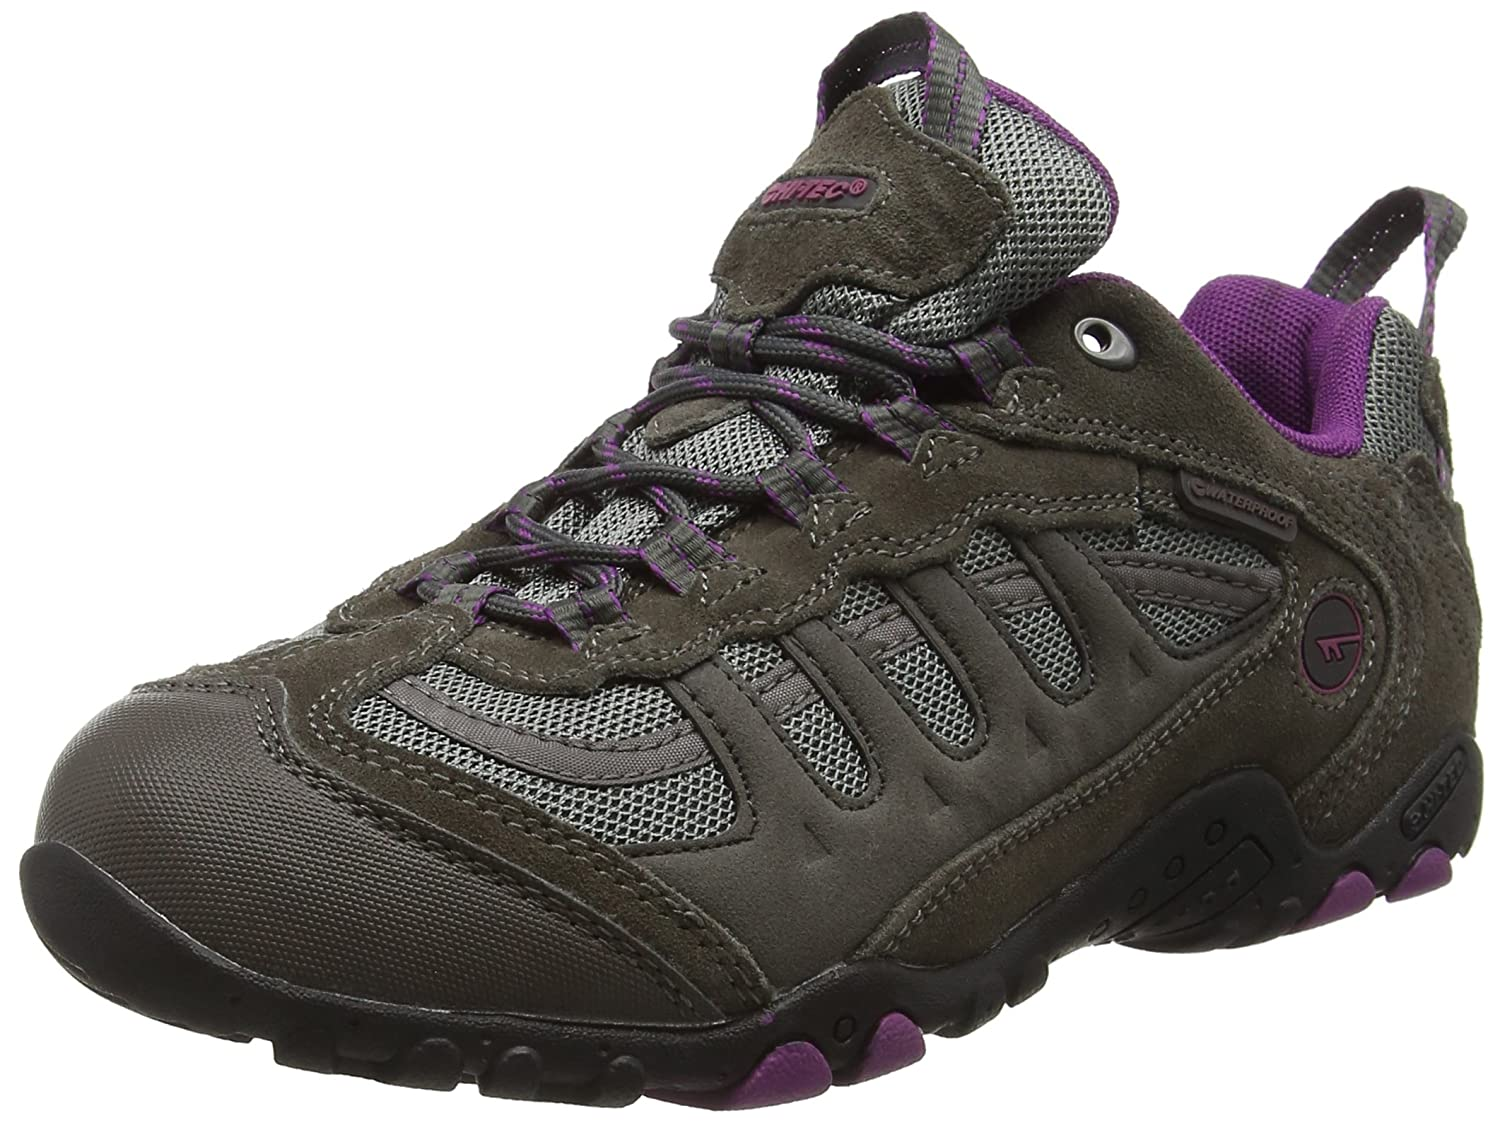 75d969025281 Hi-Tec Quadra Classic Women s Low Rise Hiking Shoes  Amazon.co.uk ...